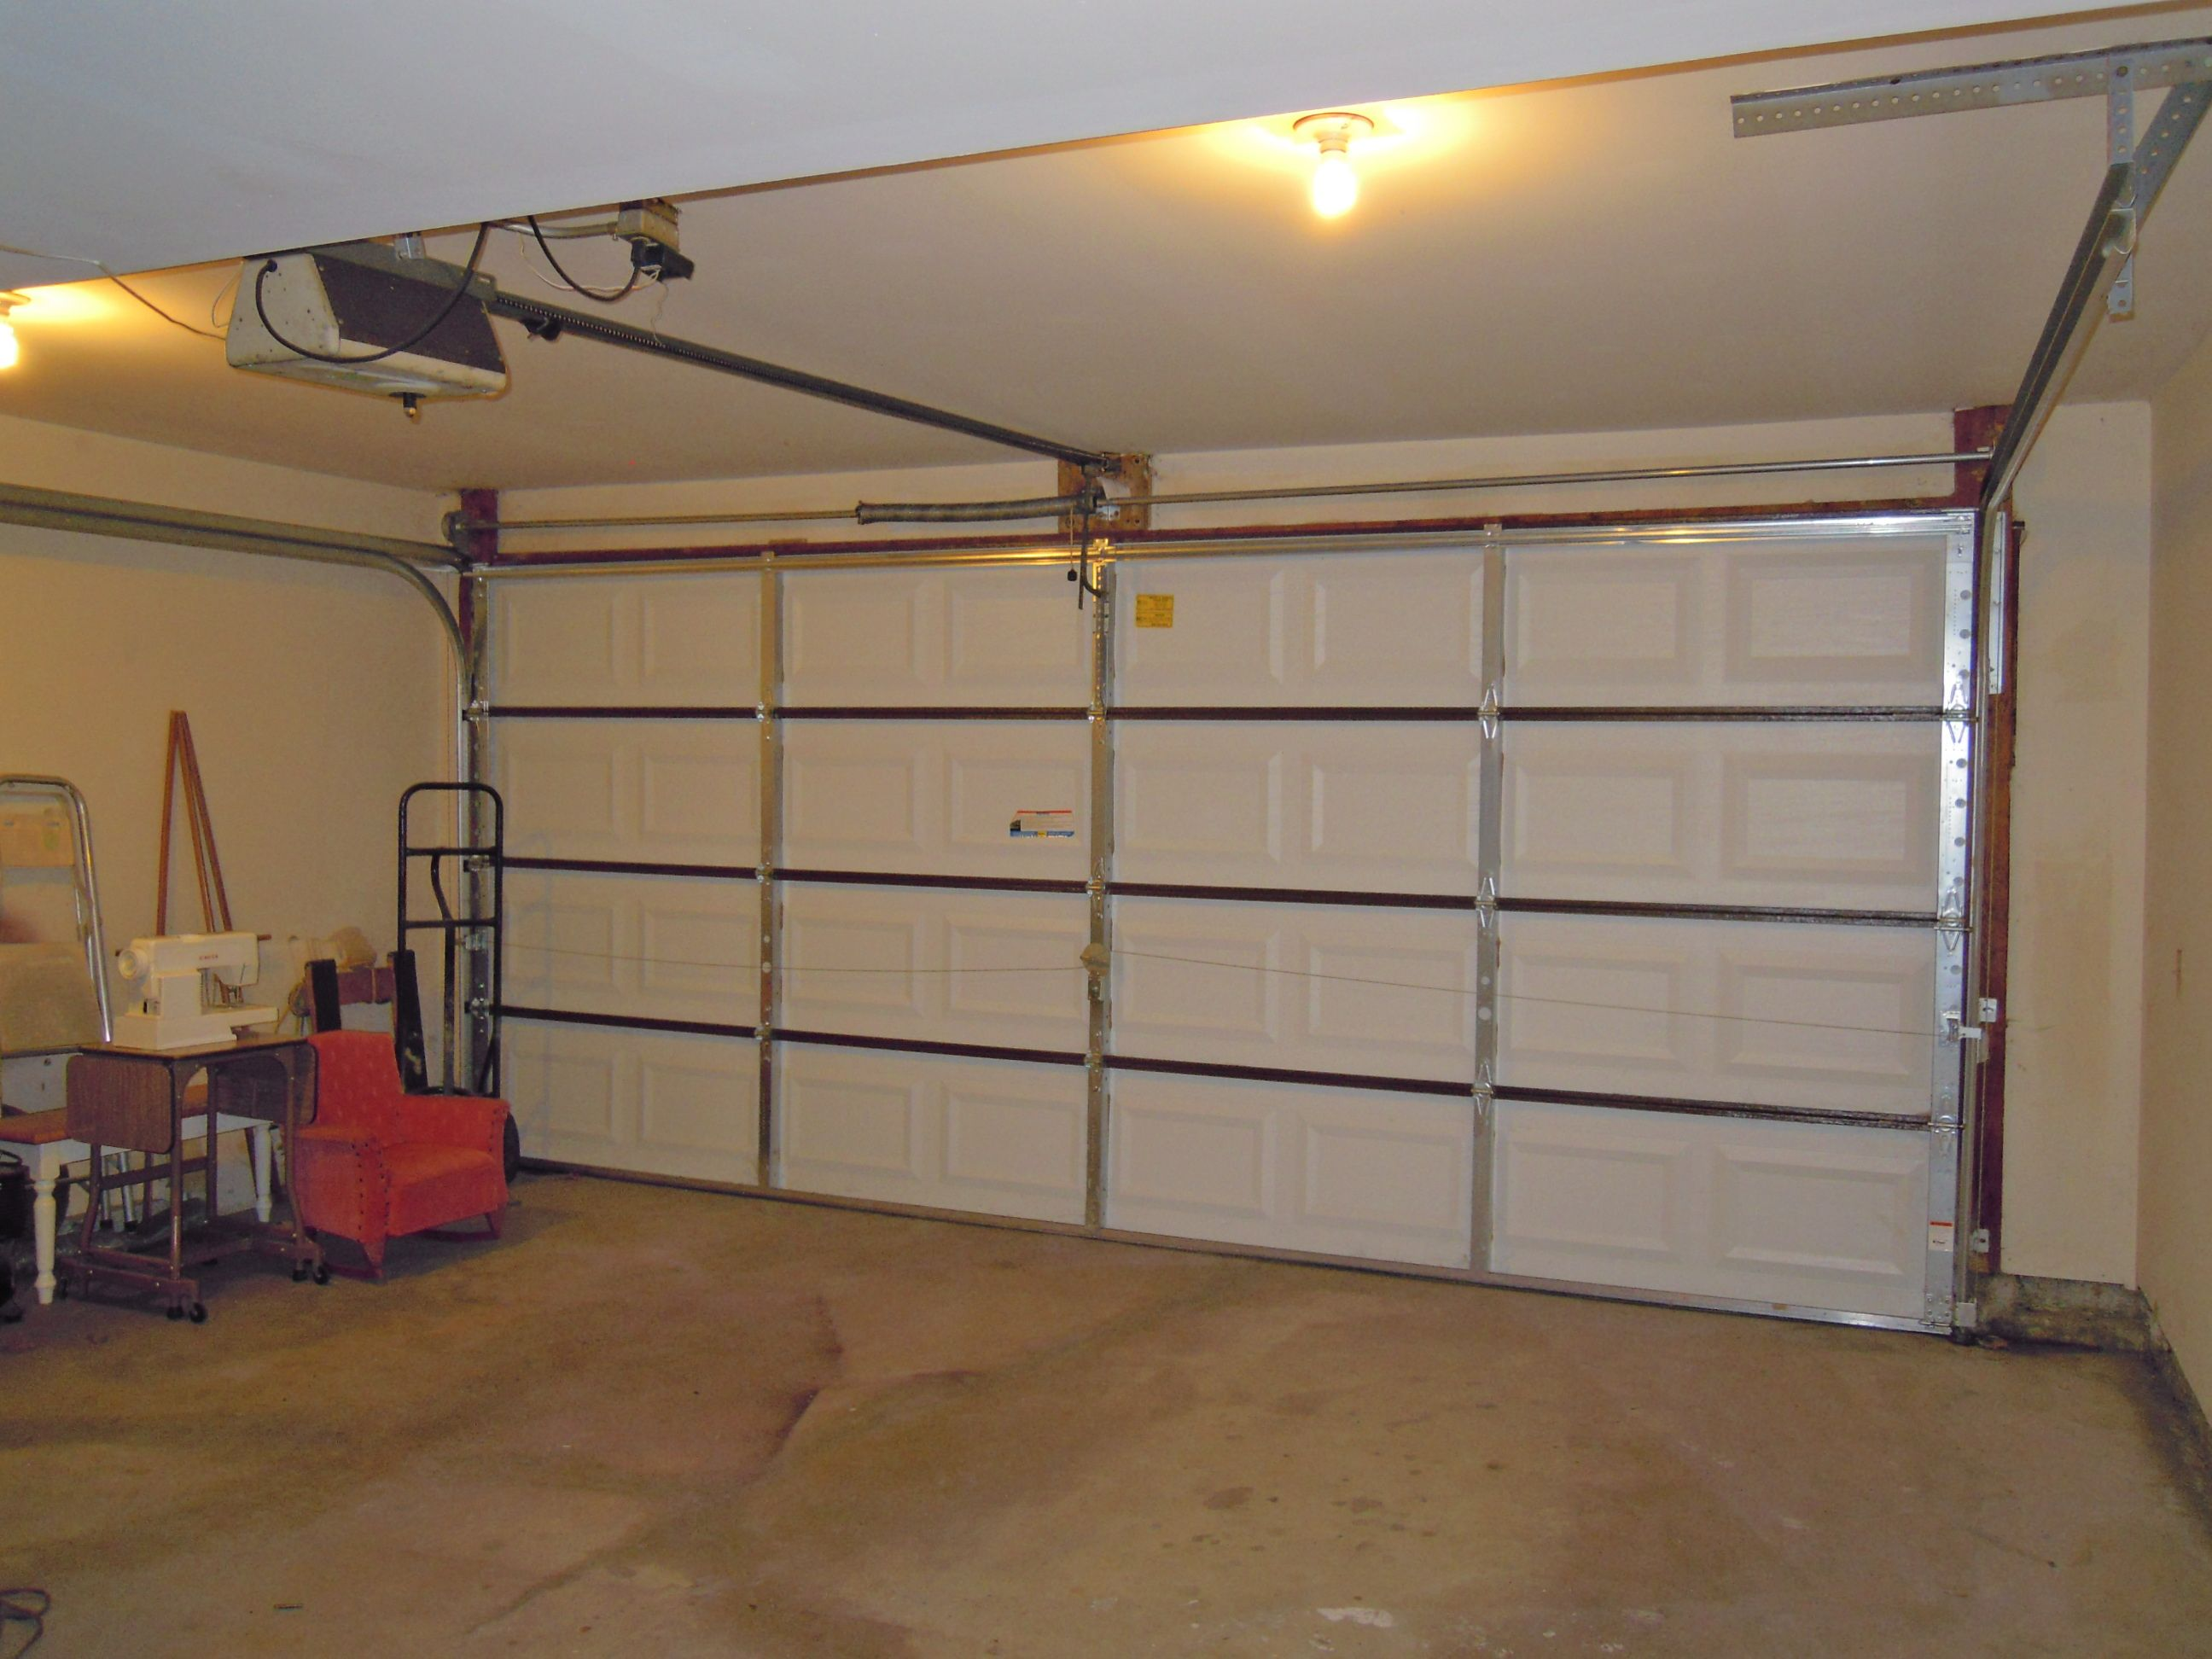 1 car garage space in shared condo garage Condo, Car